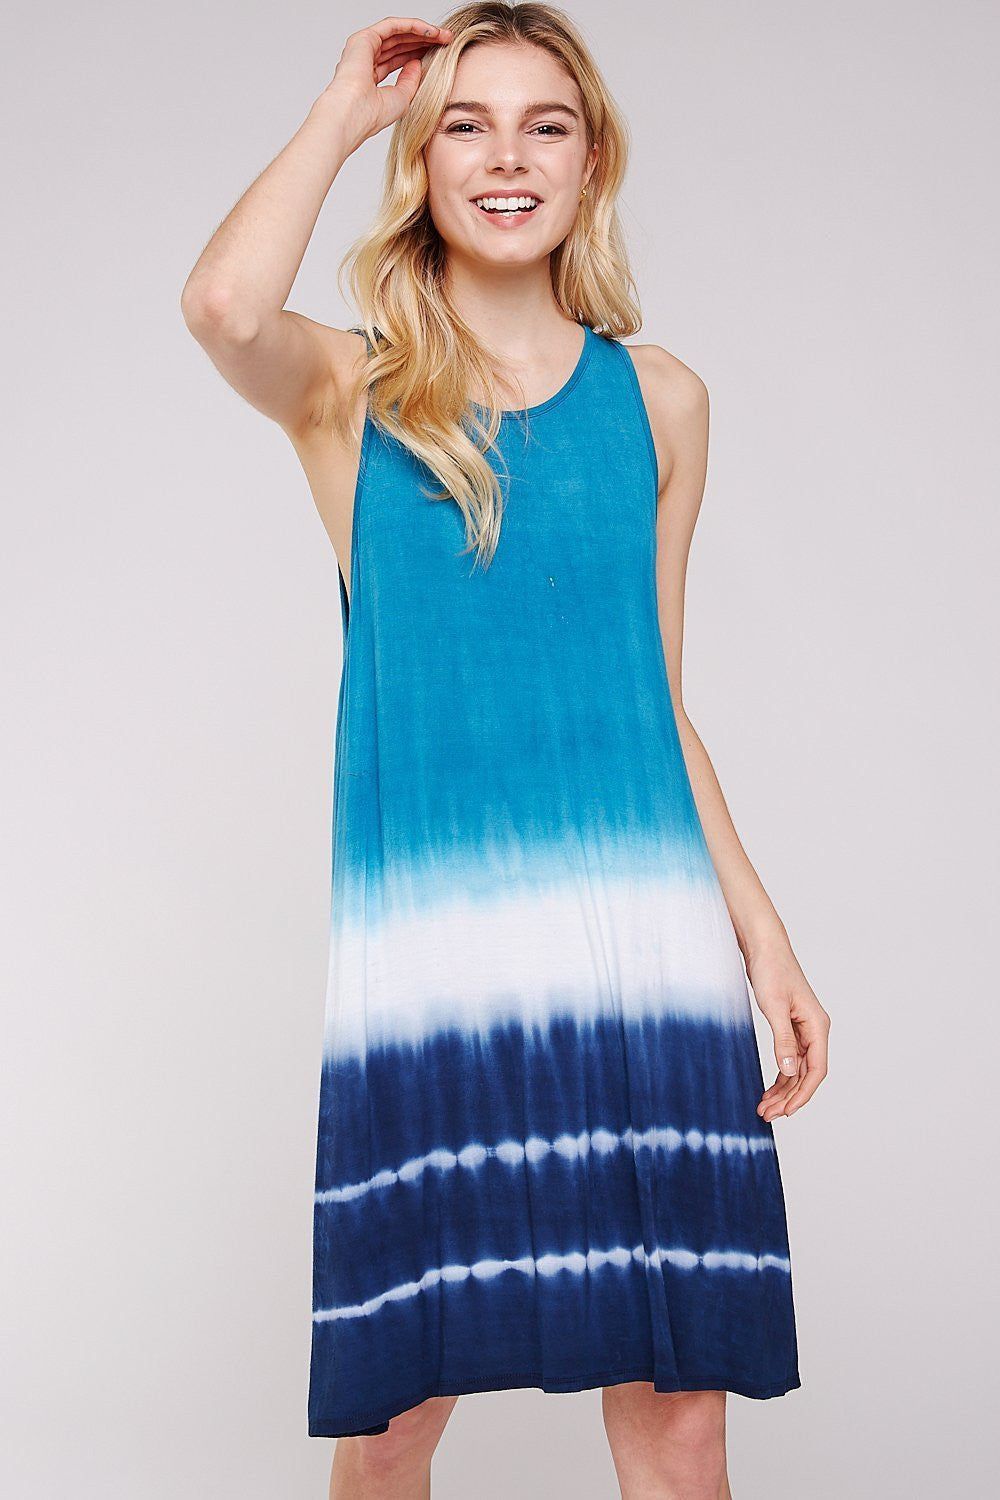 Wholesale Clothing, Online Wholesale Clothing, Women Clothing, Bohemian, Free People, tiedye, specialty wash, wholesale seller, wholesale women clothing shop, gypsy look, USA made, URBAN X APPAREL-DRESSES-UDR7071, fashiontrend2019